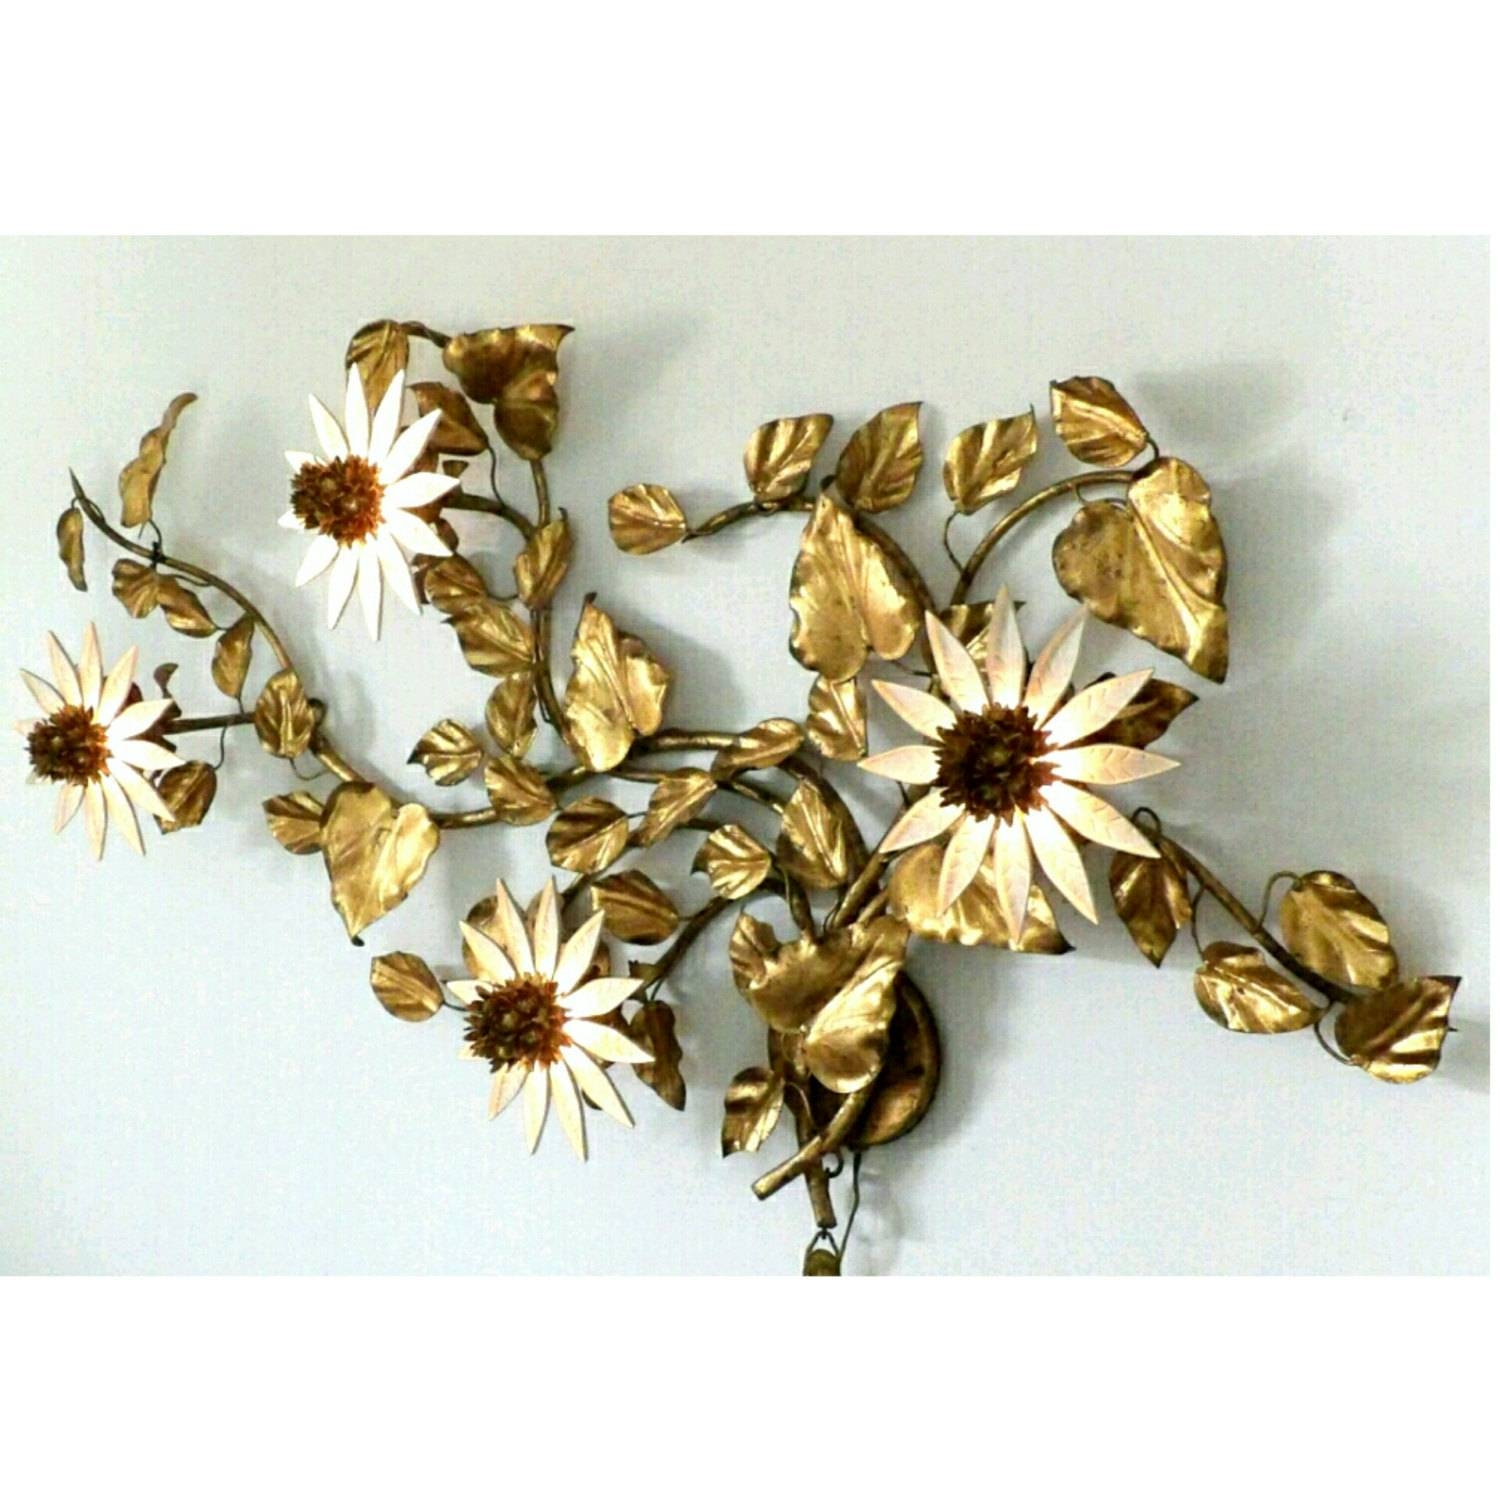 Brevettato Italian Lighted Metal Wall Art Sconce Floral With Regard To Latest Floral Metal Wall Art (View 16 of 20)